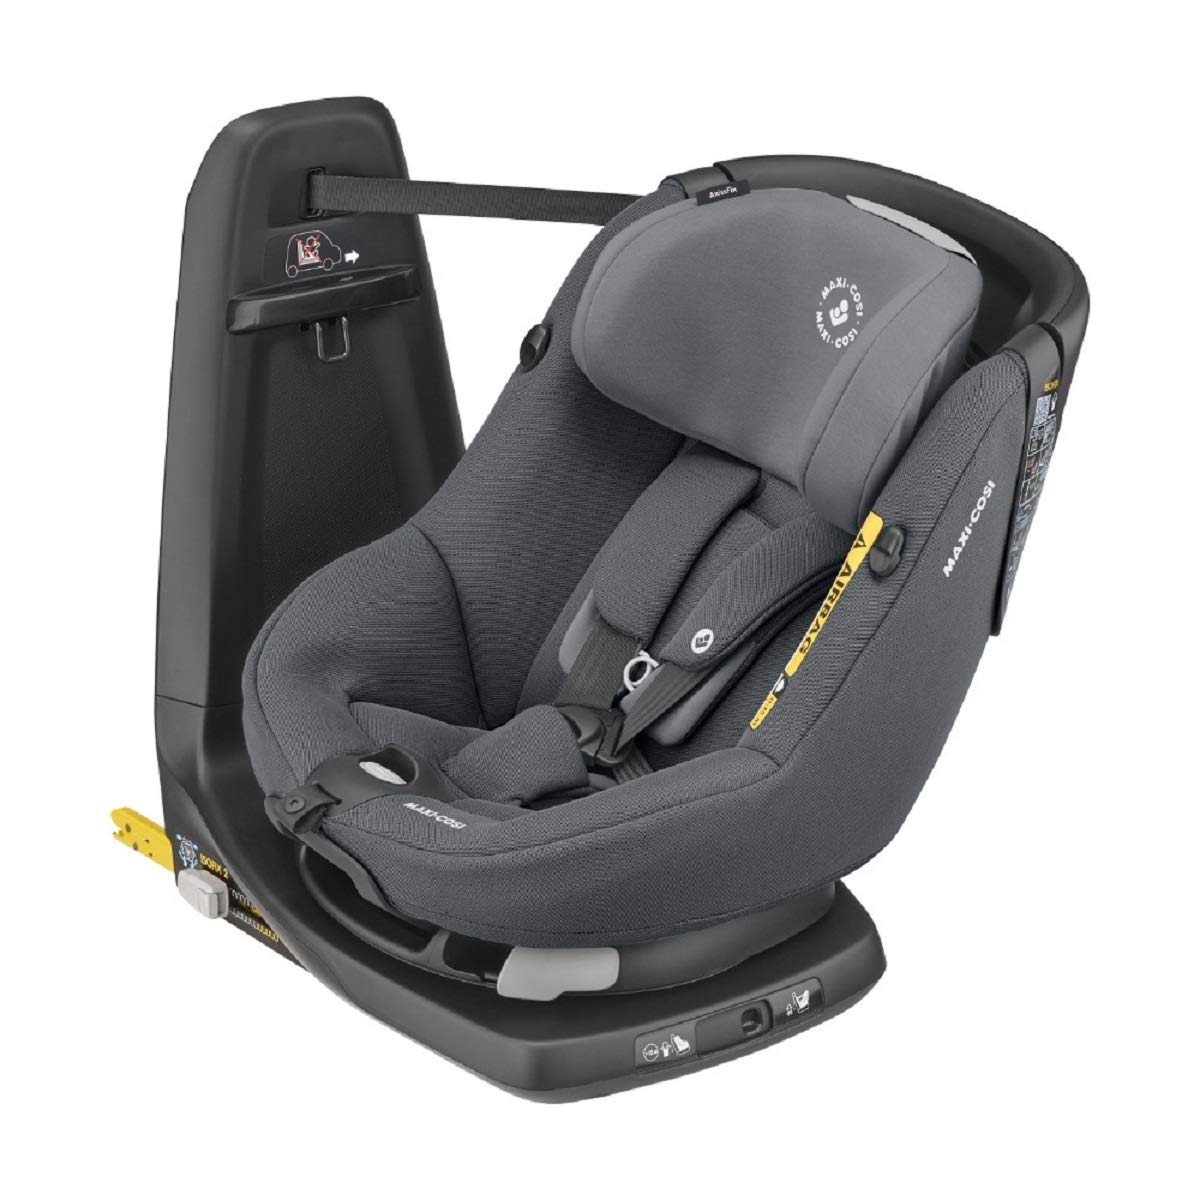 Maxi-Cosi AxissFix Toddler Car Seat, Swivel Car Seat, 4 months - 4 years, 61 - 105 cm, Authentic Graphite